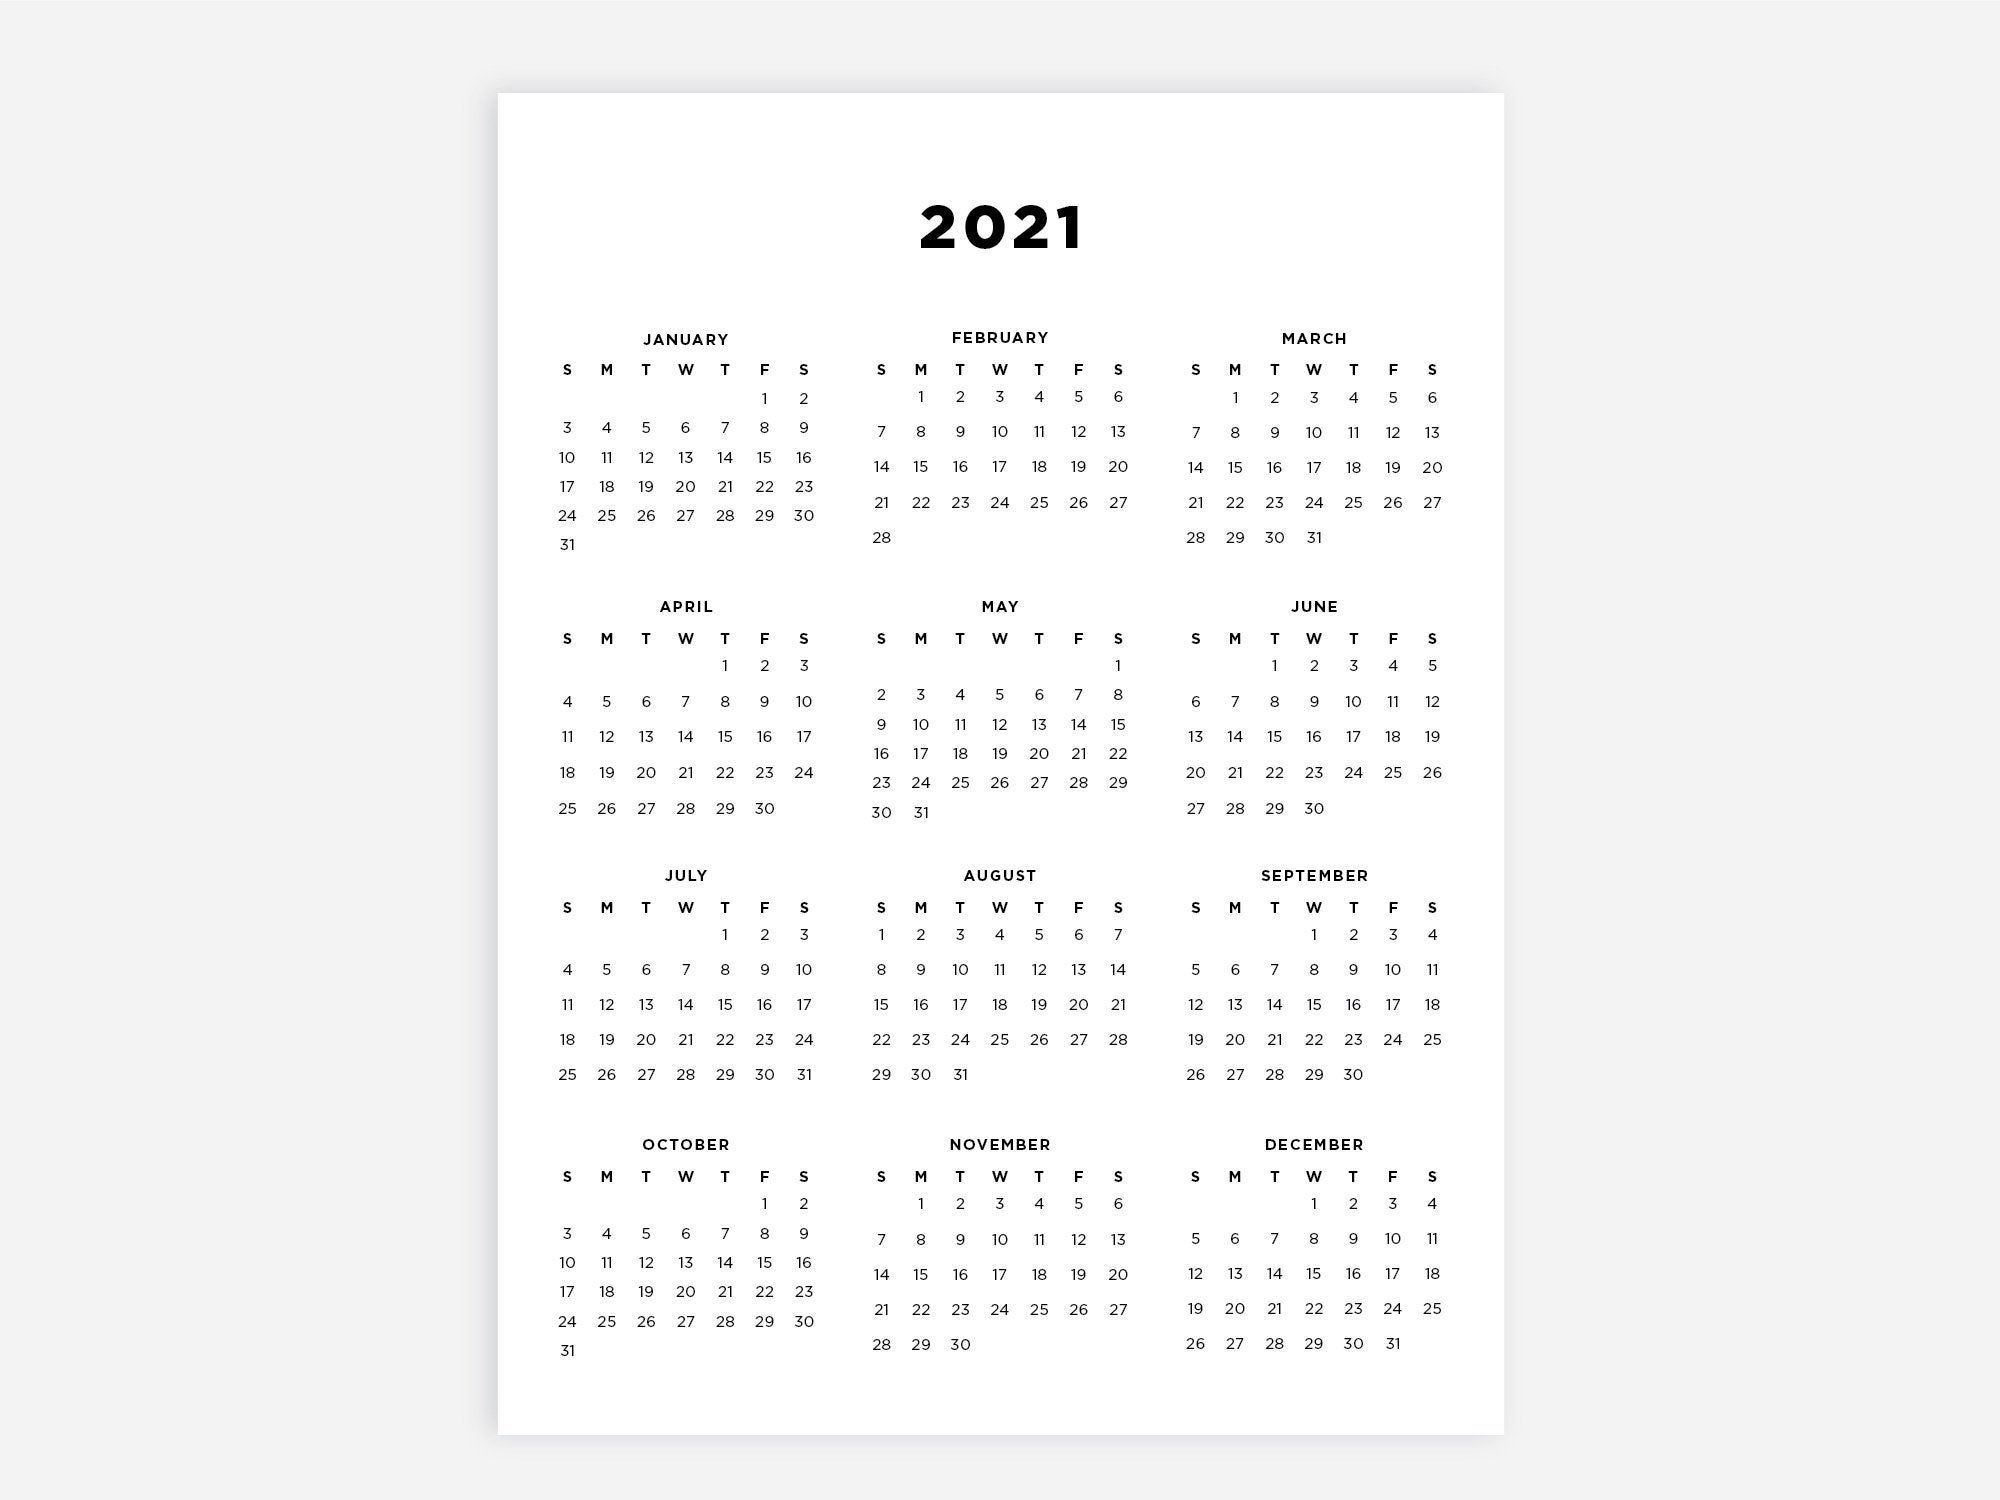 20+ Calendar 2021 Xls - Free Download Printable Calendar ...